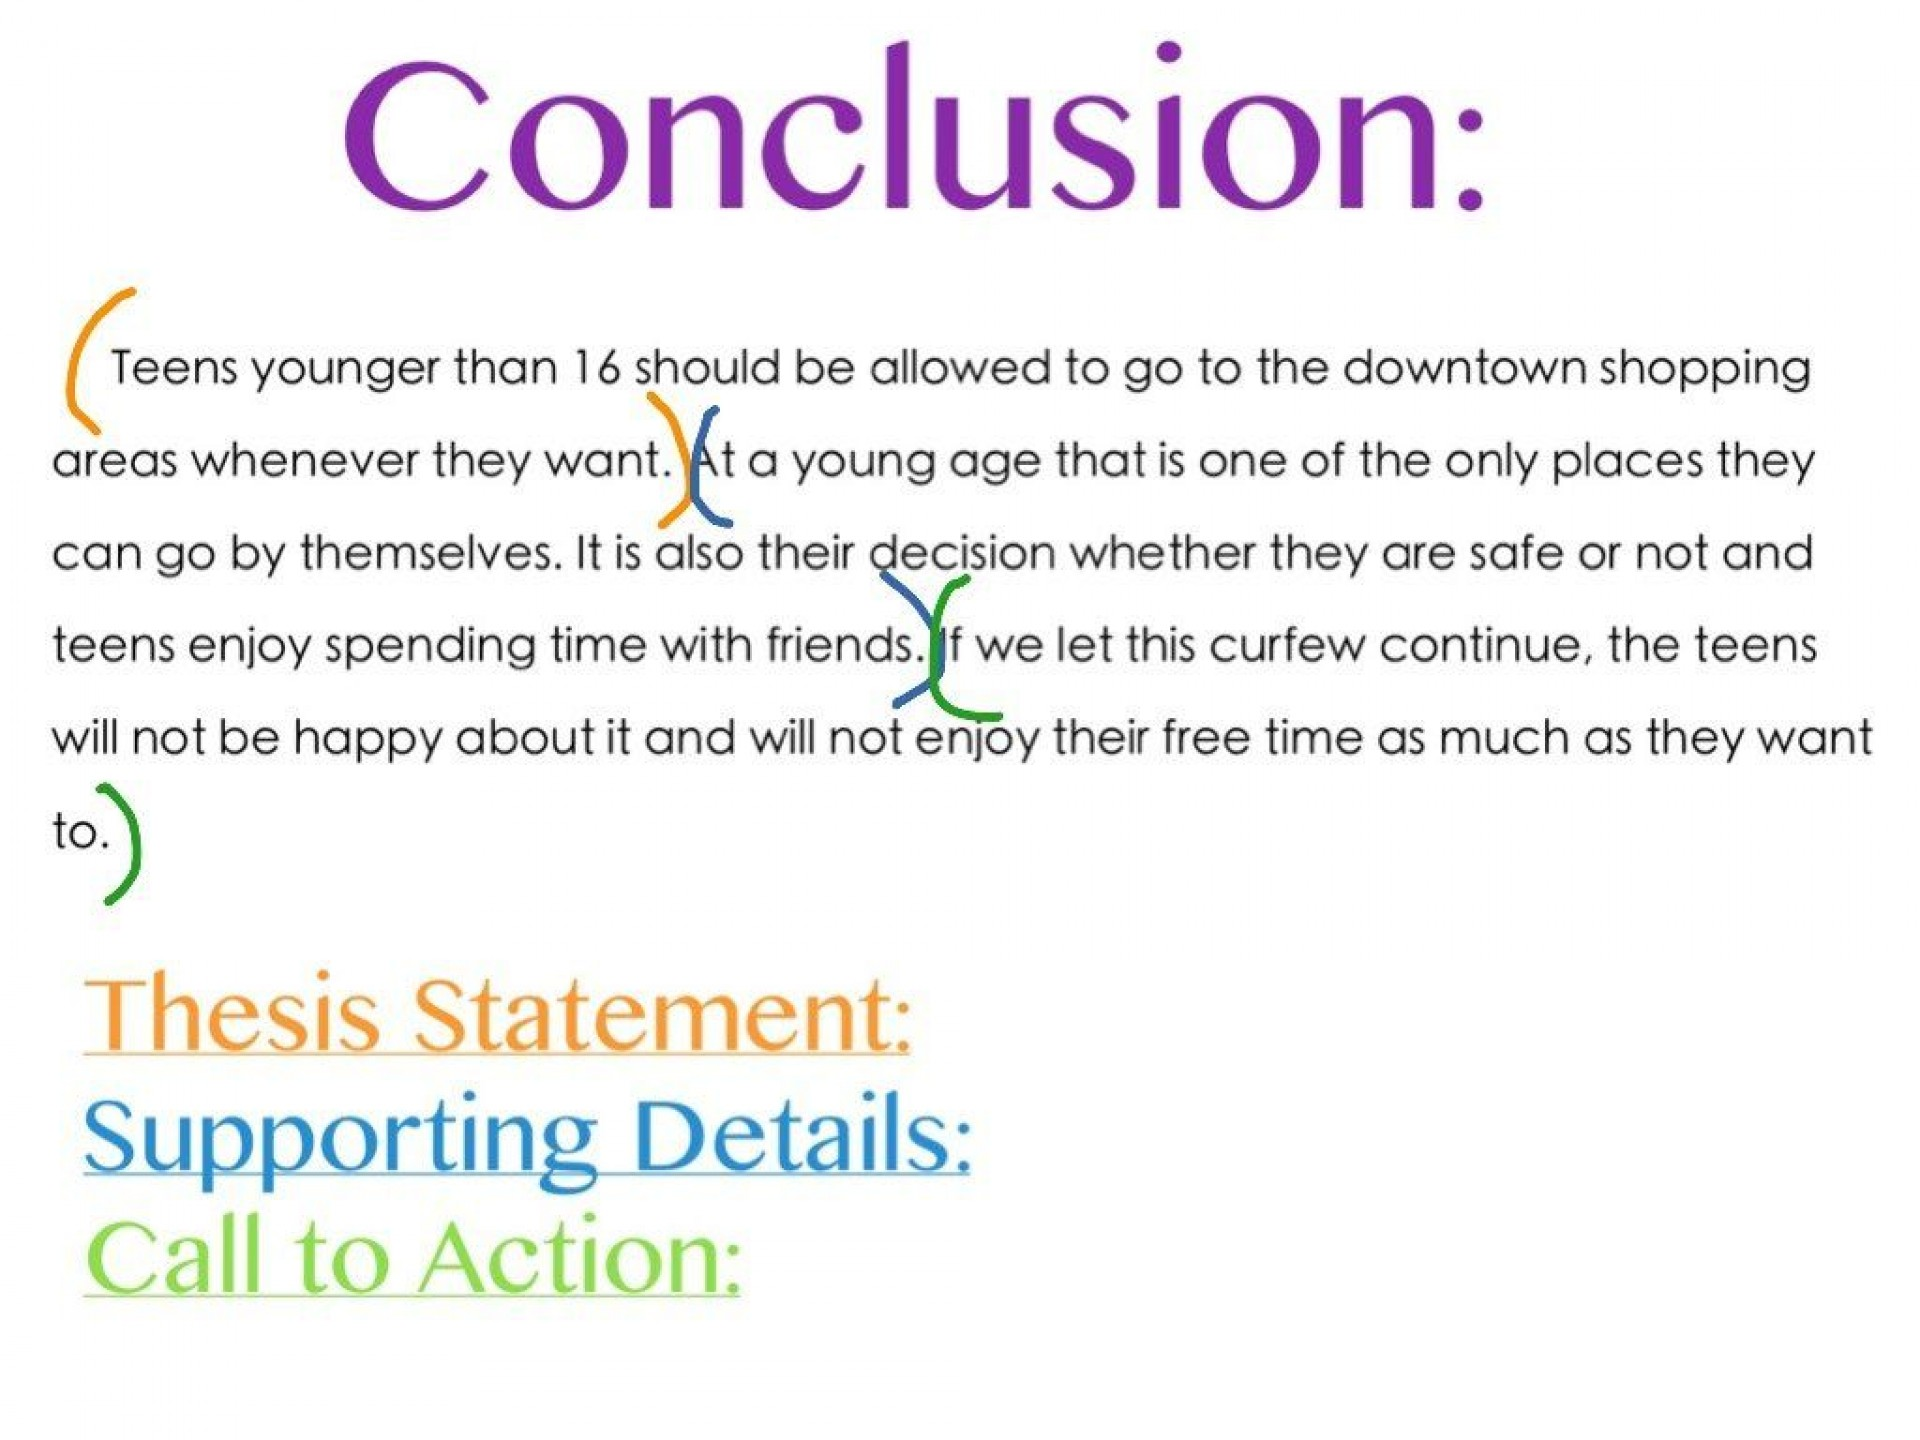 003 Conclusion To Persuasive Essay Outstanding Good A Example The Strongest 1920